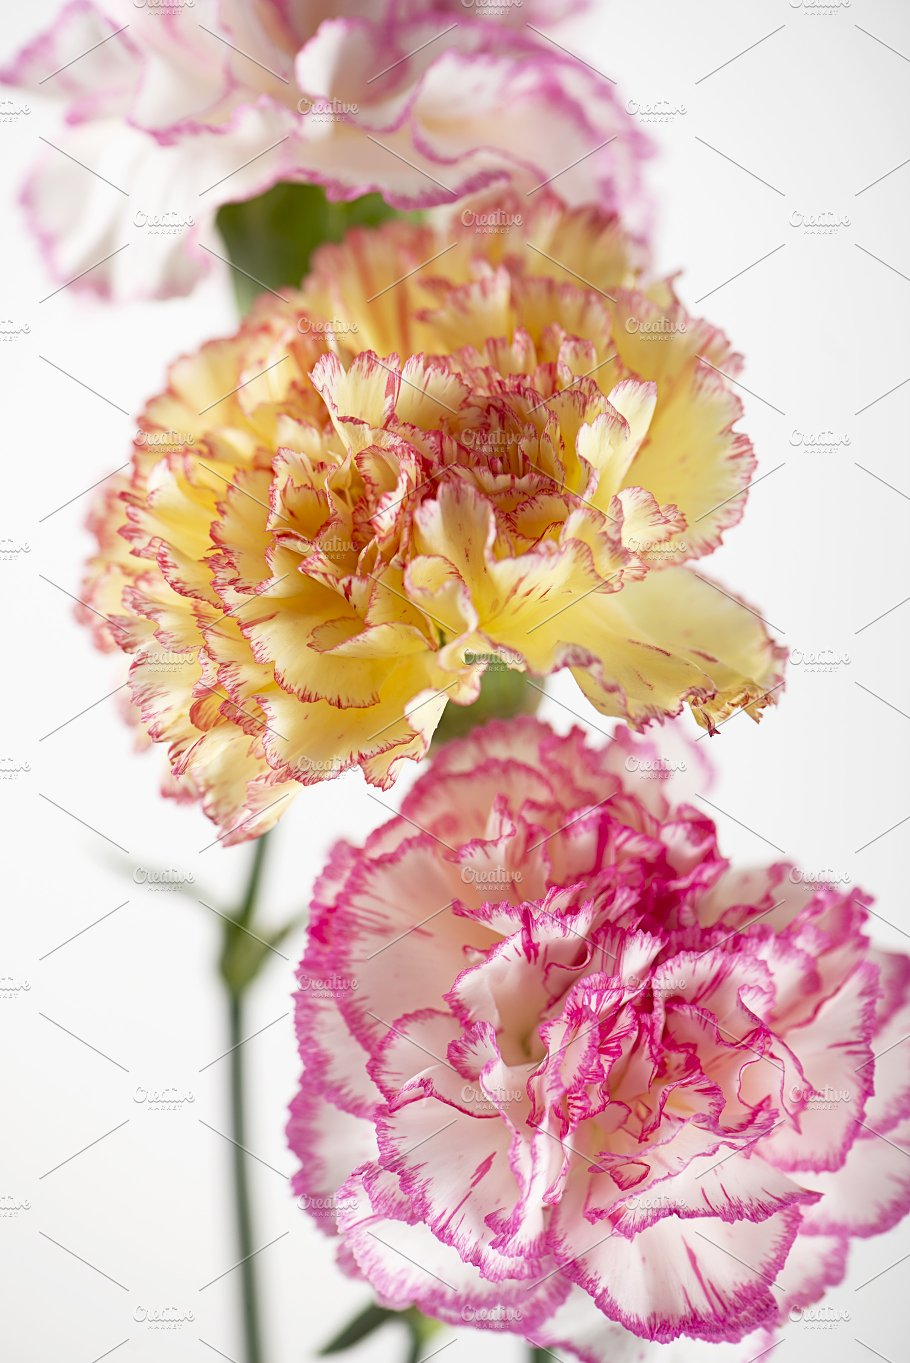 Vertical Shoot Of White And Pink Flowers Next To Yellow Flowers On